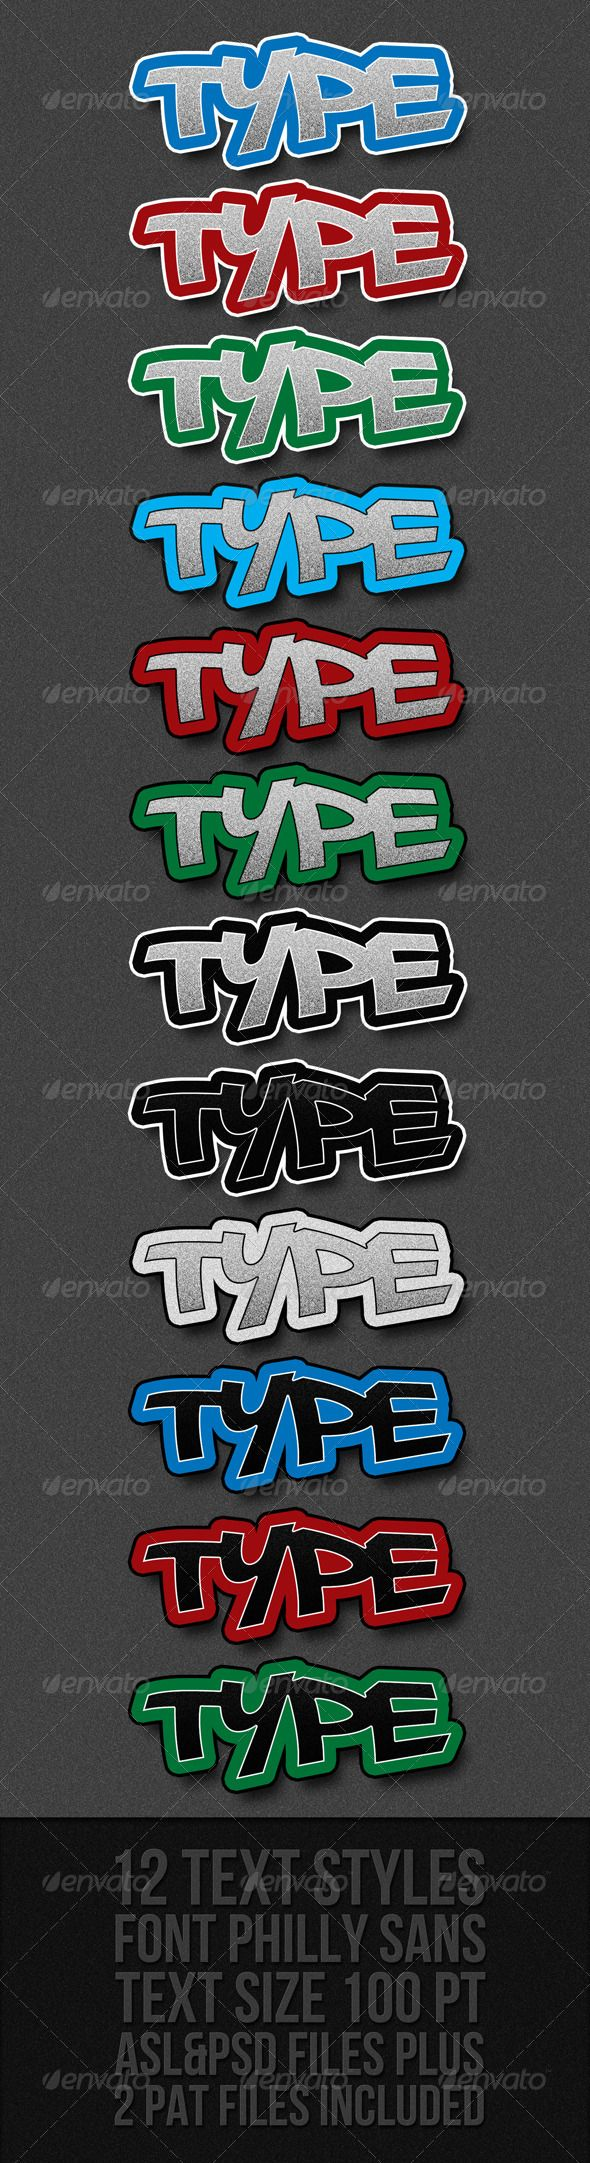 Graffiti Text Styles #GraphicRiver GRAFFITI TEXT STYLES 12 text styles Asl file with 12 text styles 12 psd layered files Pat file with 2 patterns also included Size 100 pt Font is Philly Sans, which is free and can be downloaded here .dafont /philly-sans.font Created: 19June11 Add-onFilesIncluded: LayeredPSD #PhotoshopPAT #PhotoshopASL MinimumAdobeCSVersion: CS3 Tags: aslfile #black #blue #colored #embossed #graffiti #gray #green #layerstyles #photoshopstyles #red #stroke #texteffect…